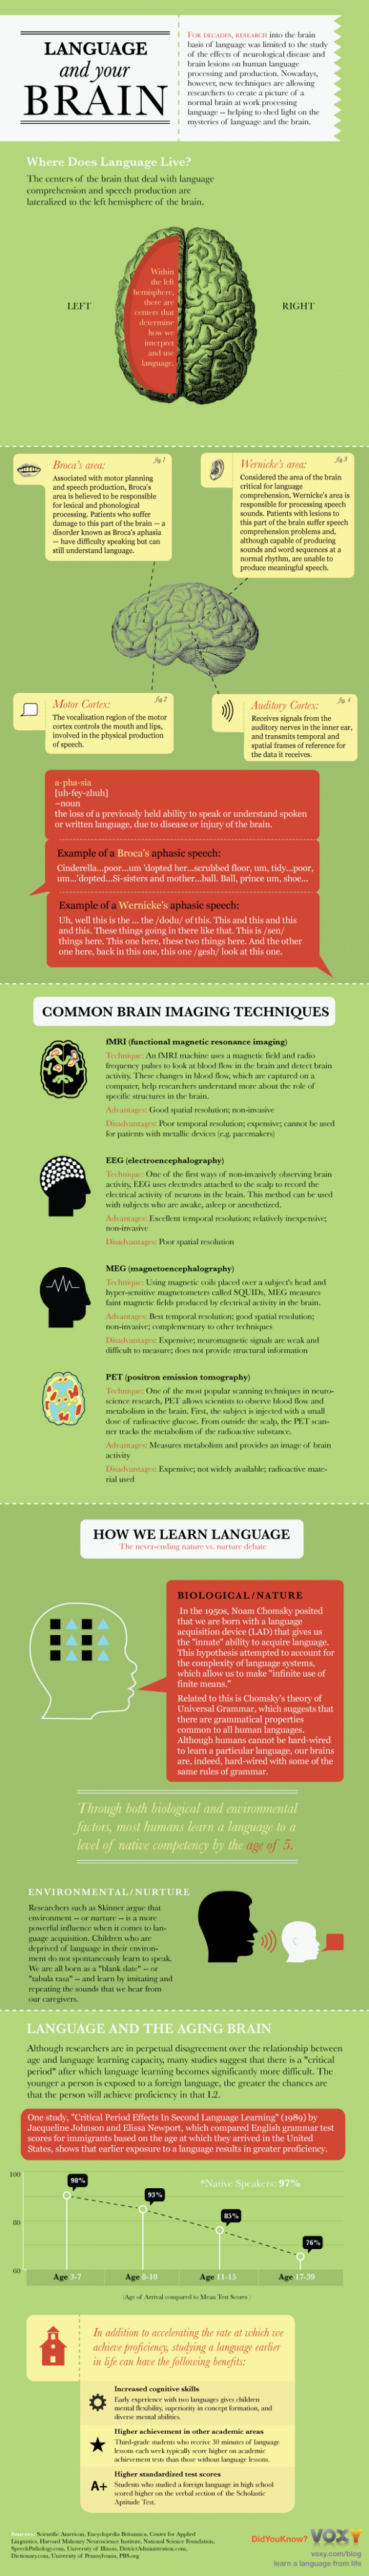 Language and Your Brain Infographic